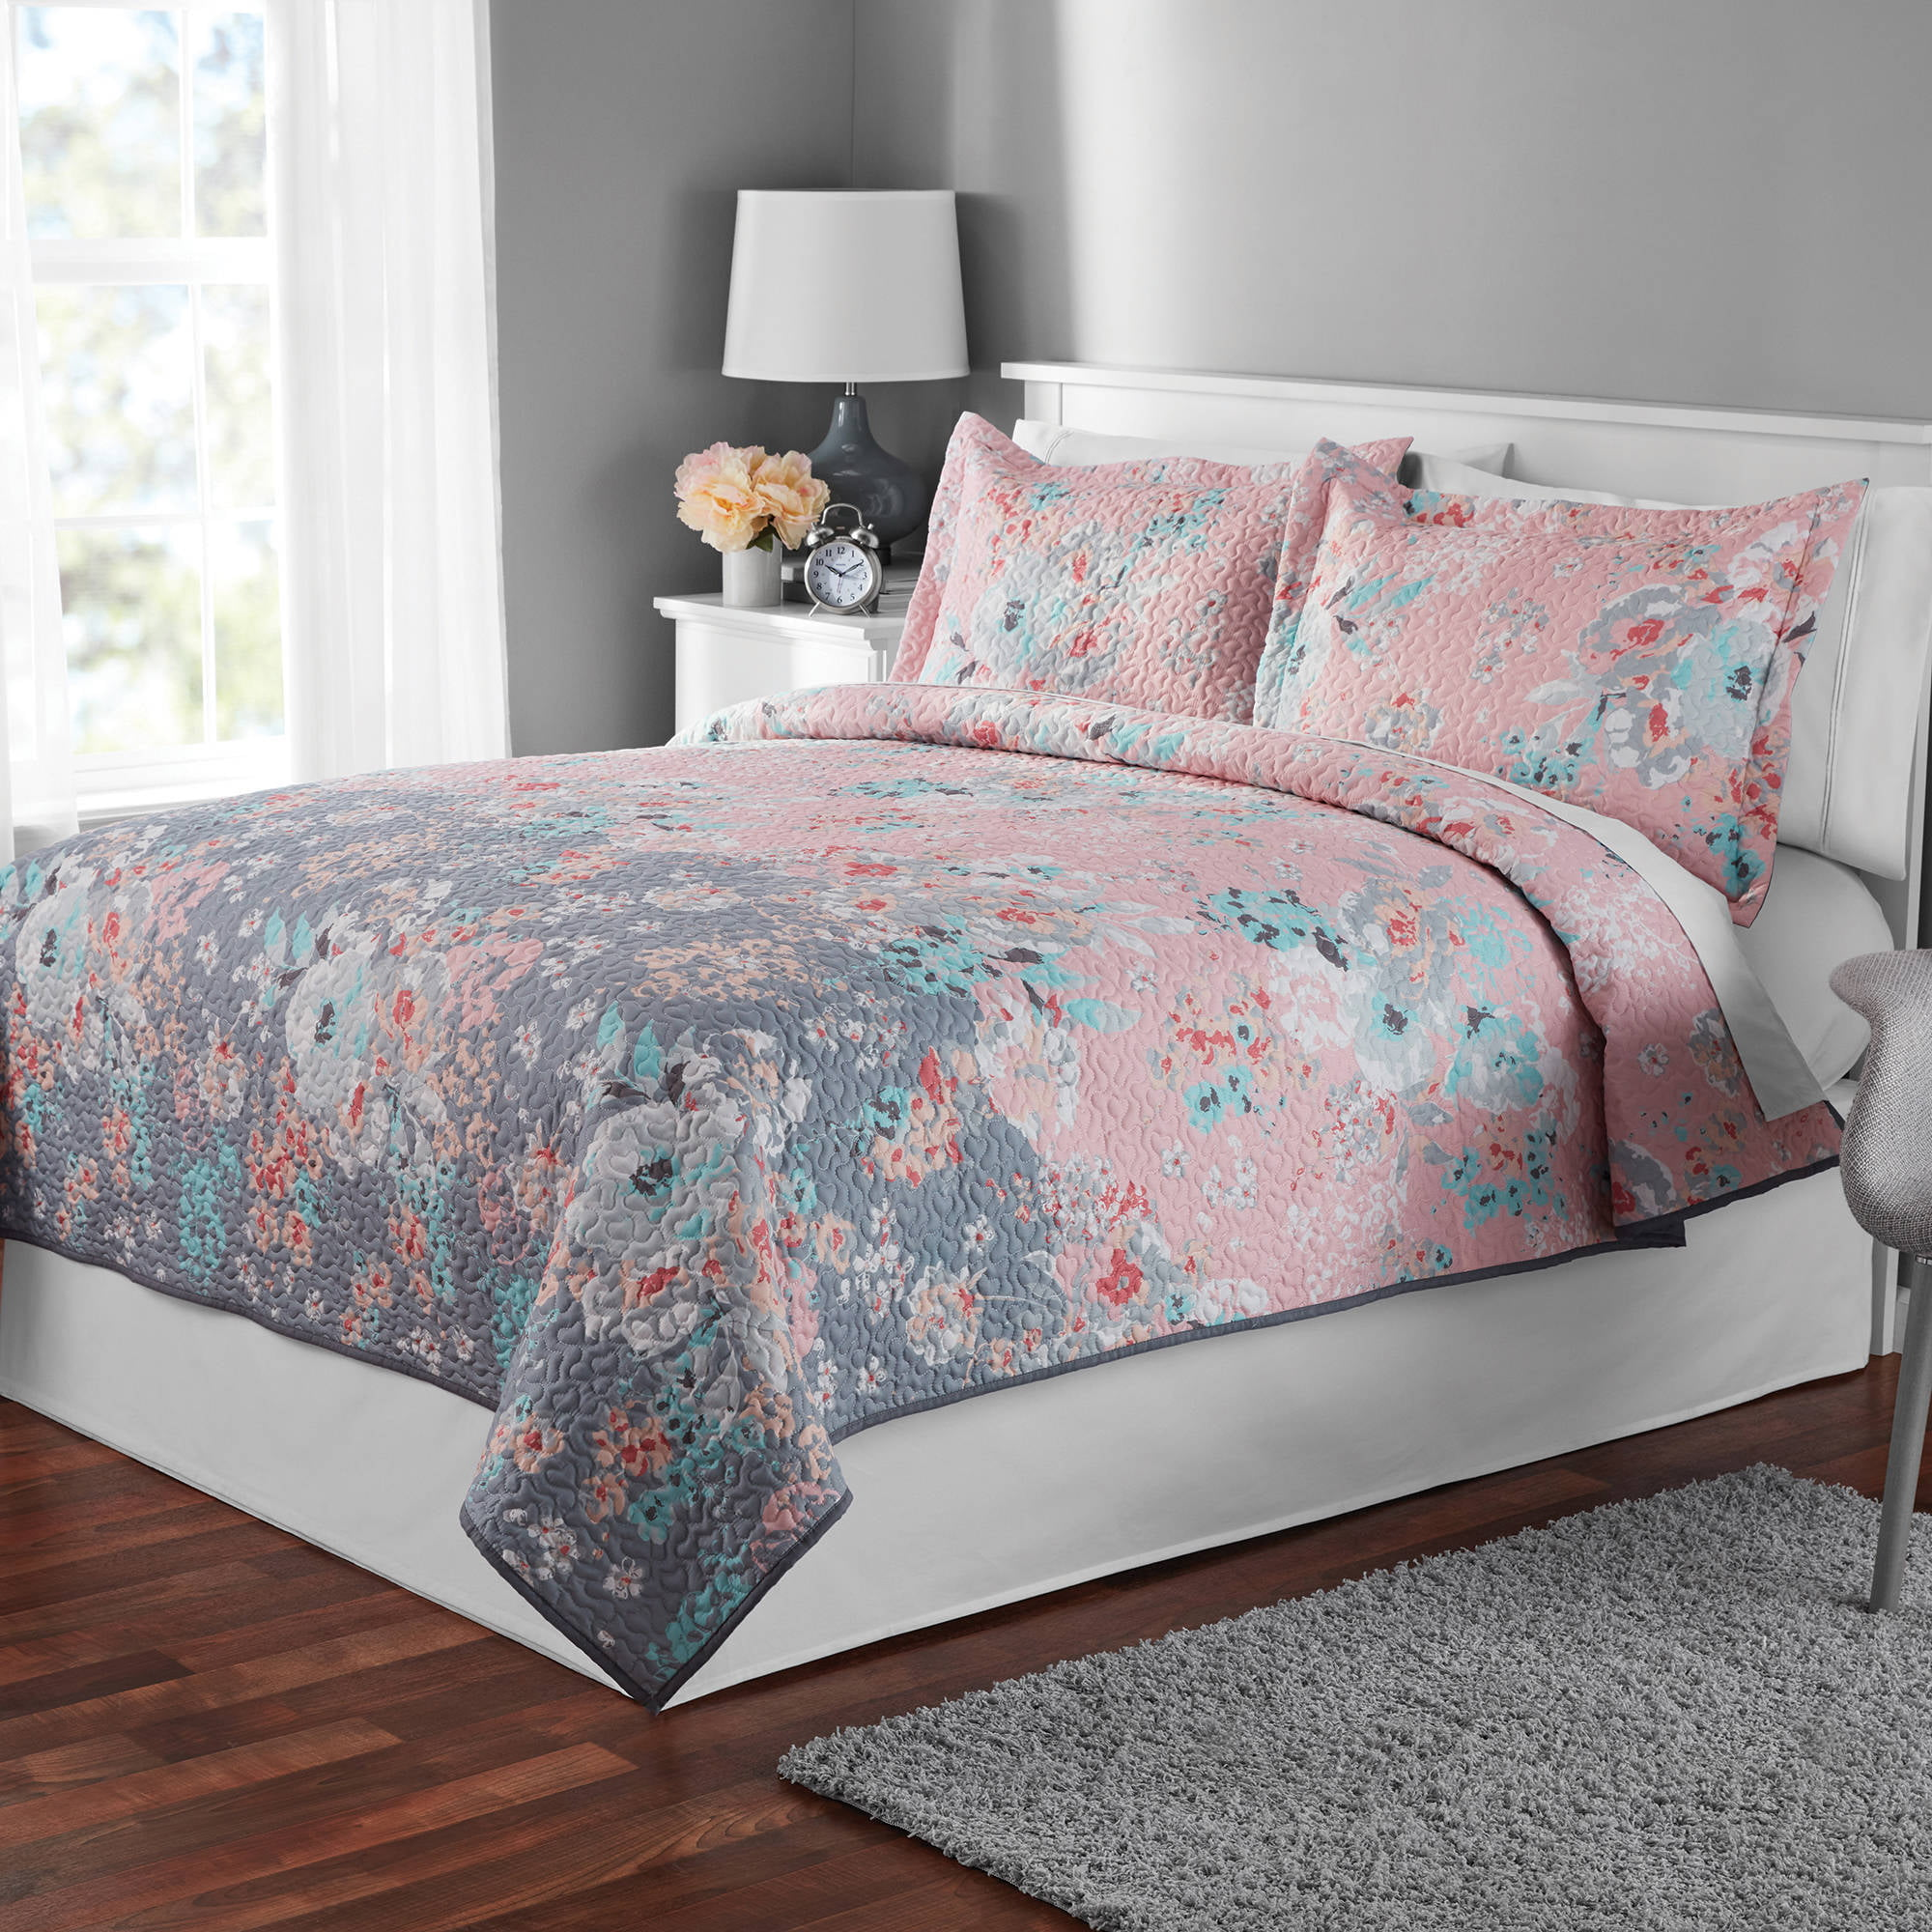 Queen Size Quilts At Walmart Better Homes And Gardens